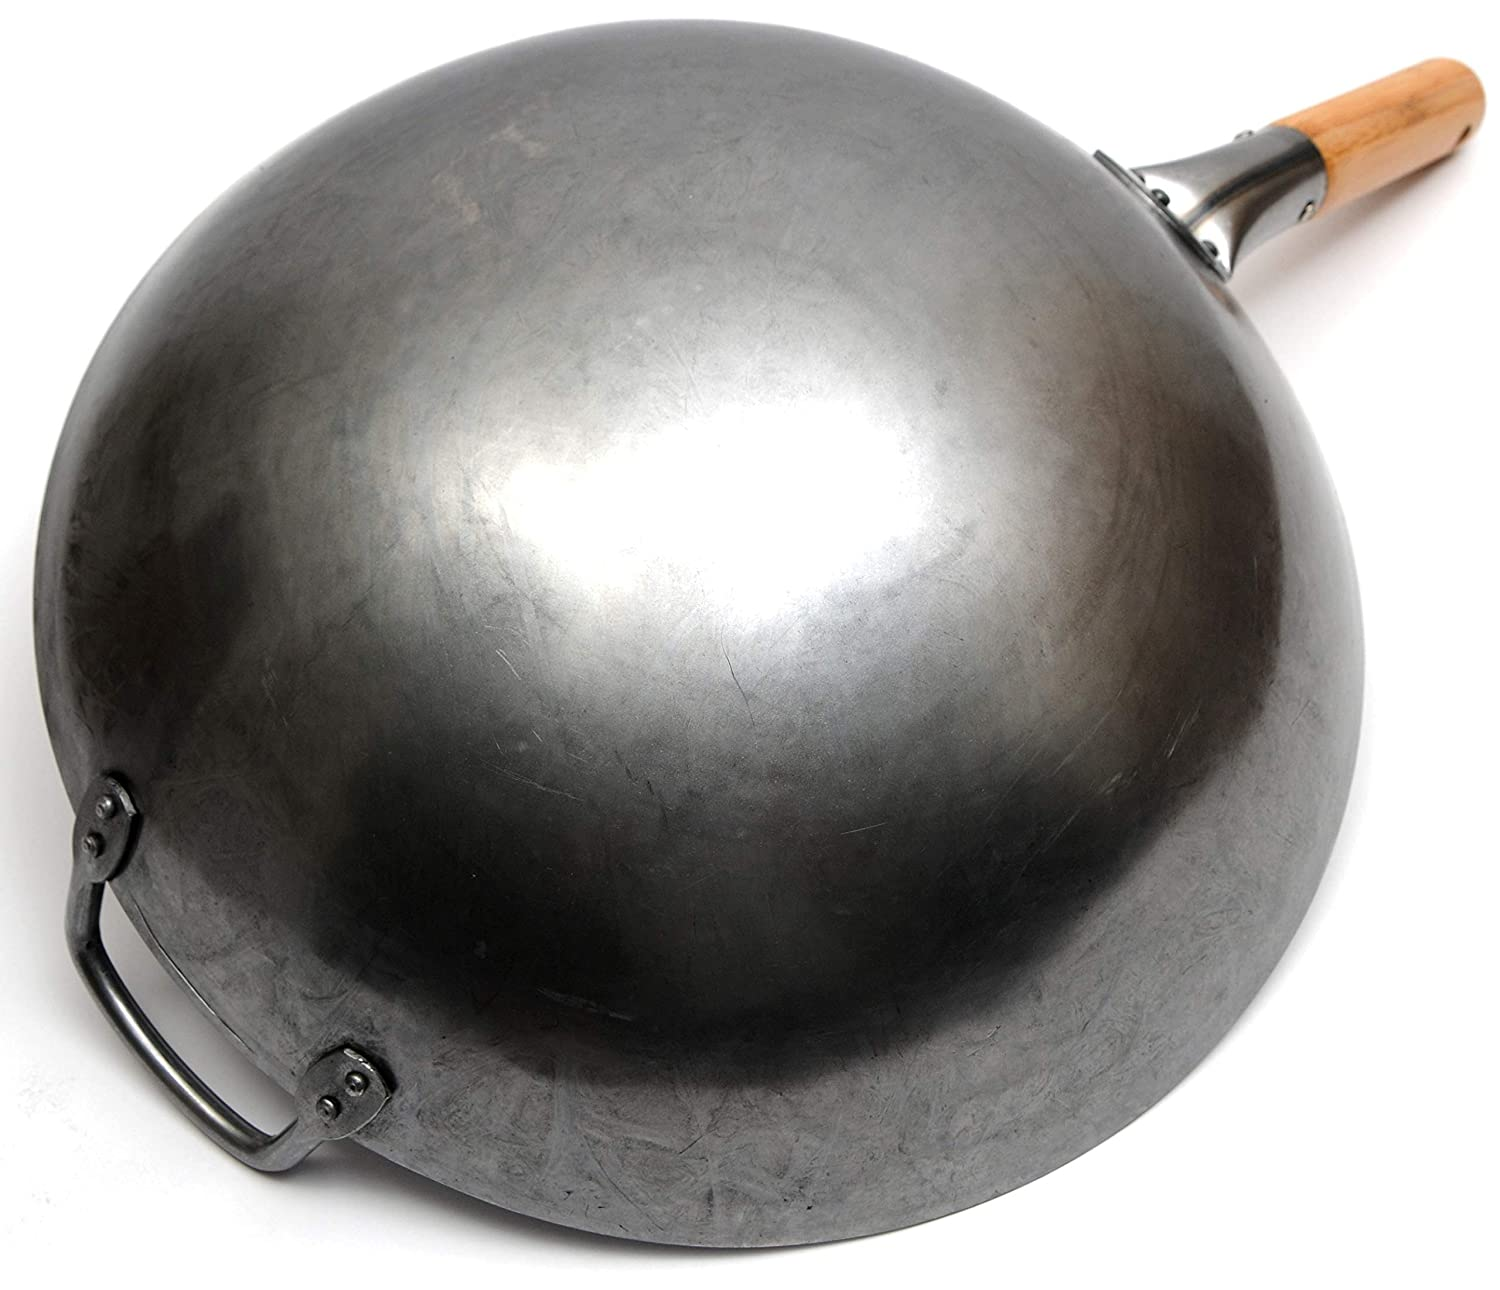 Round Bottom by Chef/'s Medal Wok101 14 Inch Traditional Hand Hammered Carbon Steel Pow Wok with Bamboo Handle and Steel Helper Handle